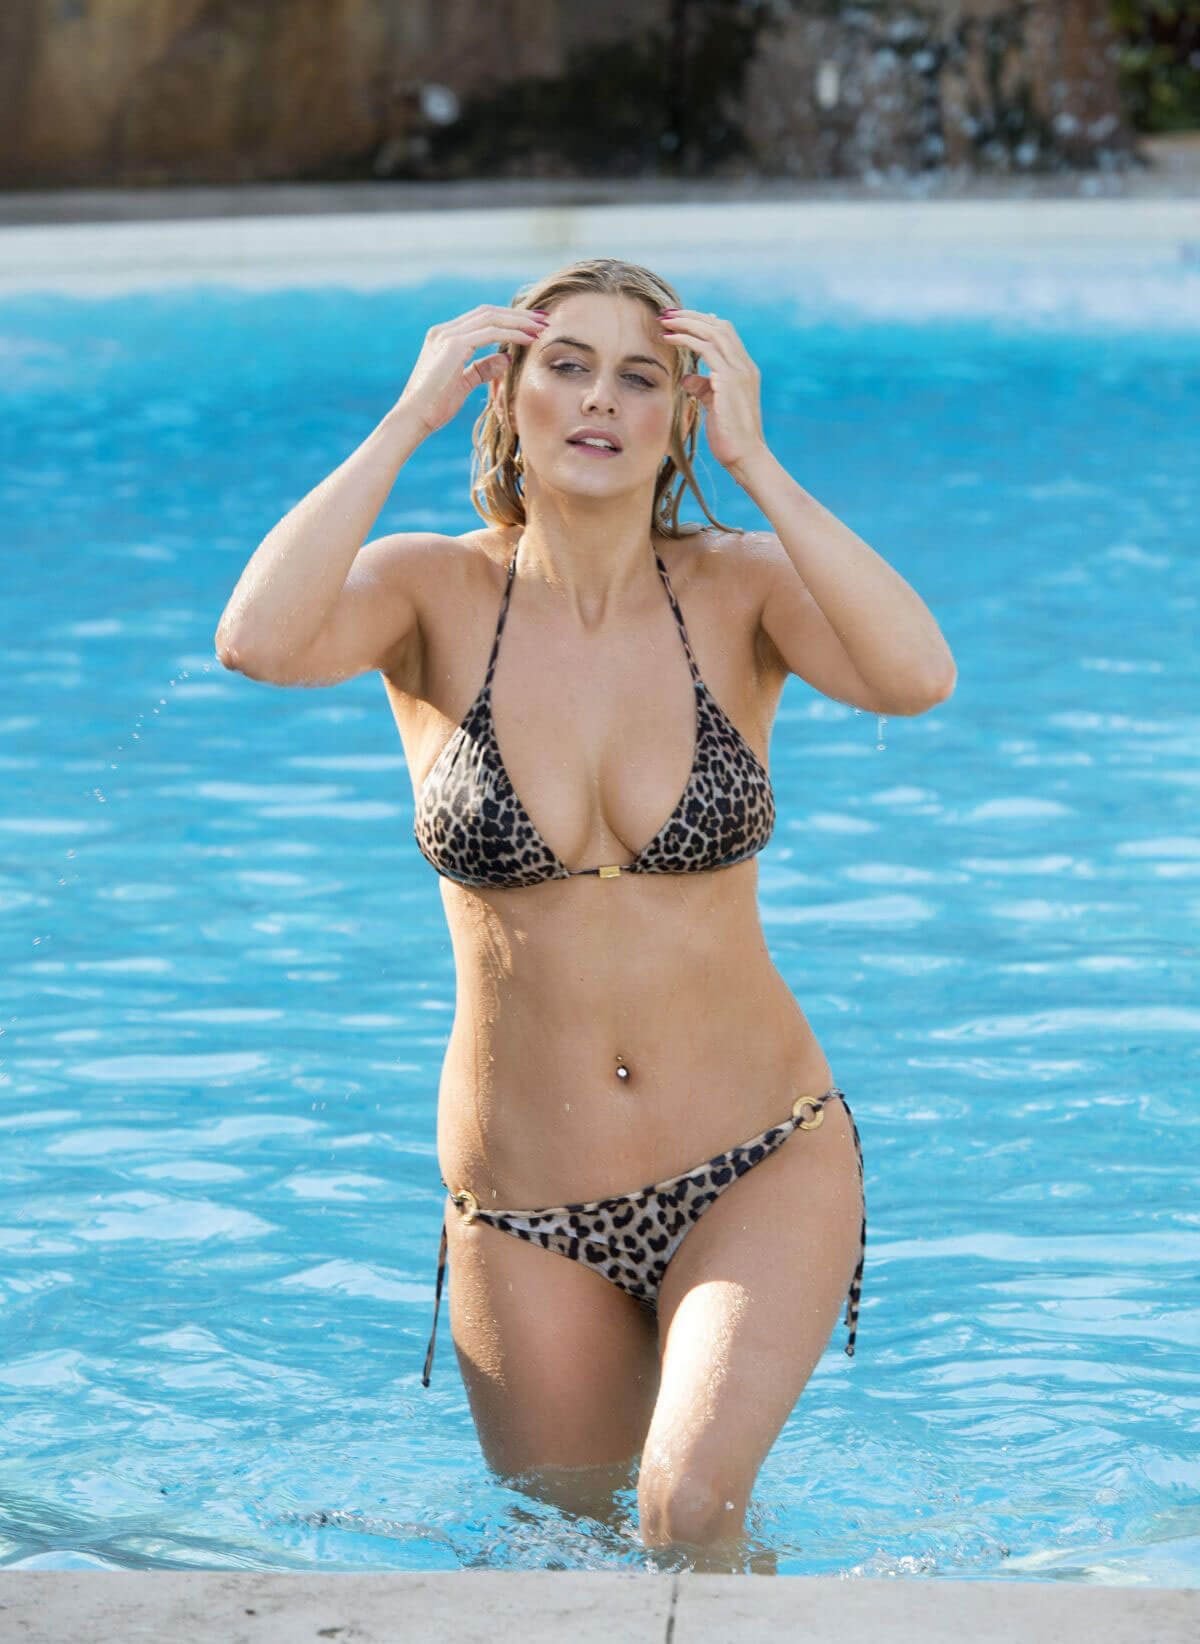 Ashley James and Olivia Cox in Bikini at a pool in Marbella Photos